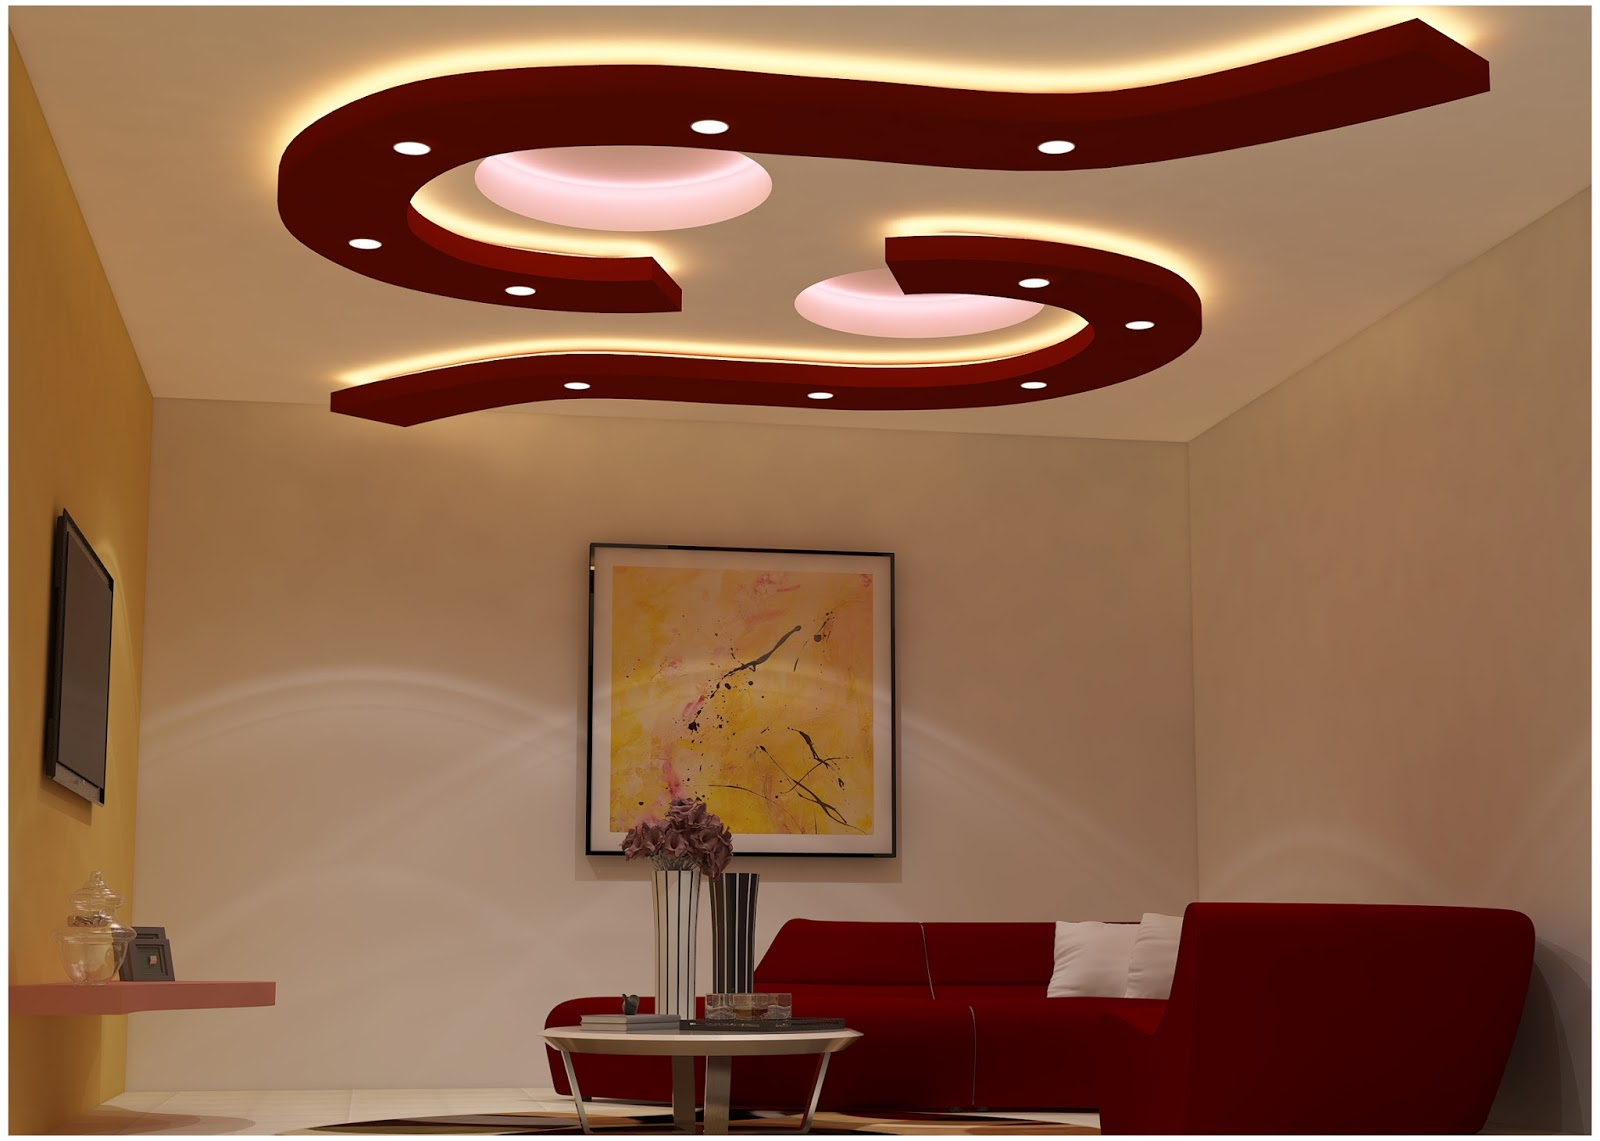 Pop Wall Design Photos : Latest plaster of paris designs pop false ceiling